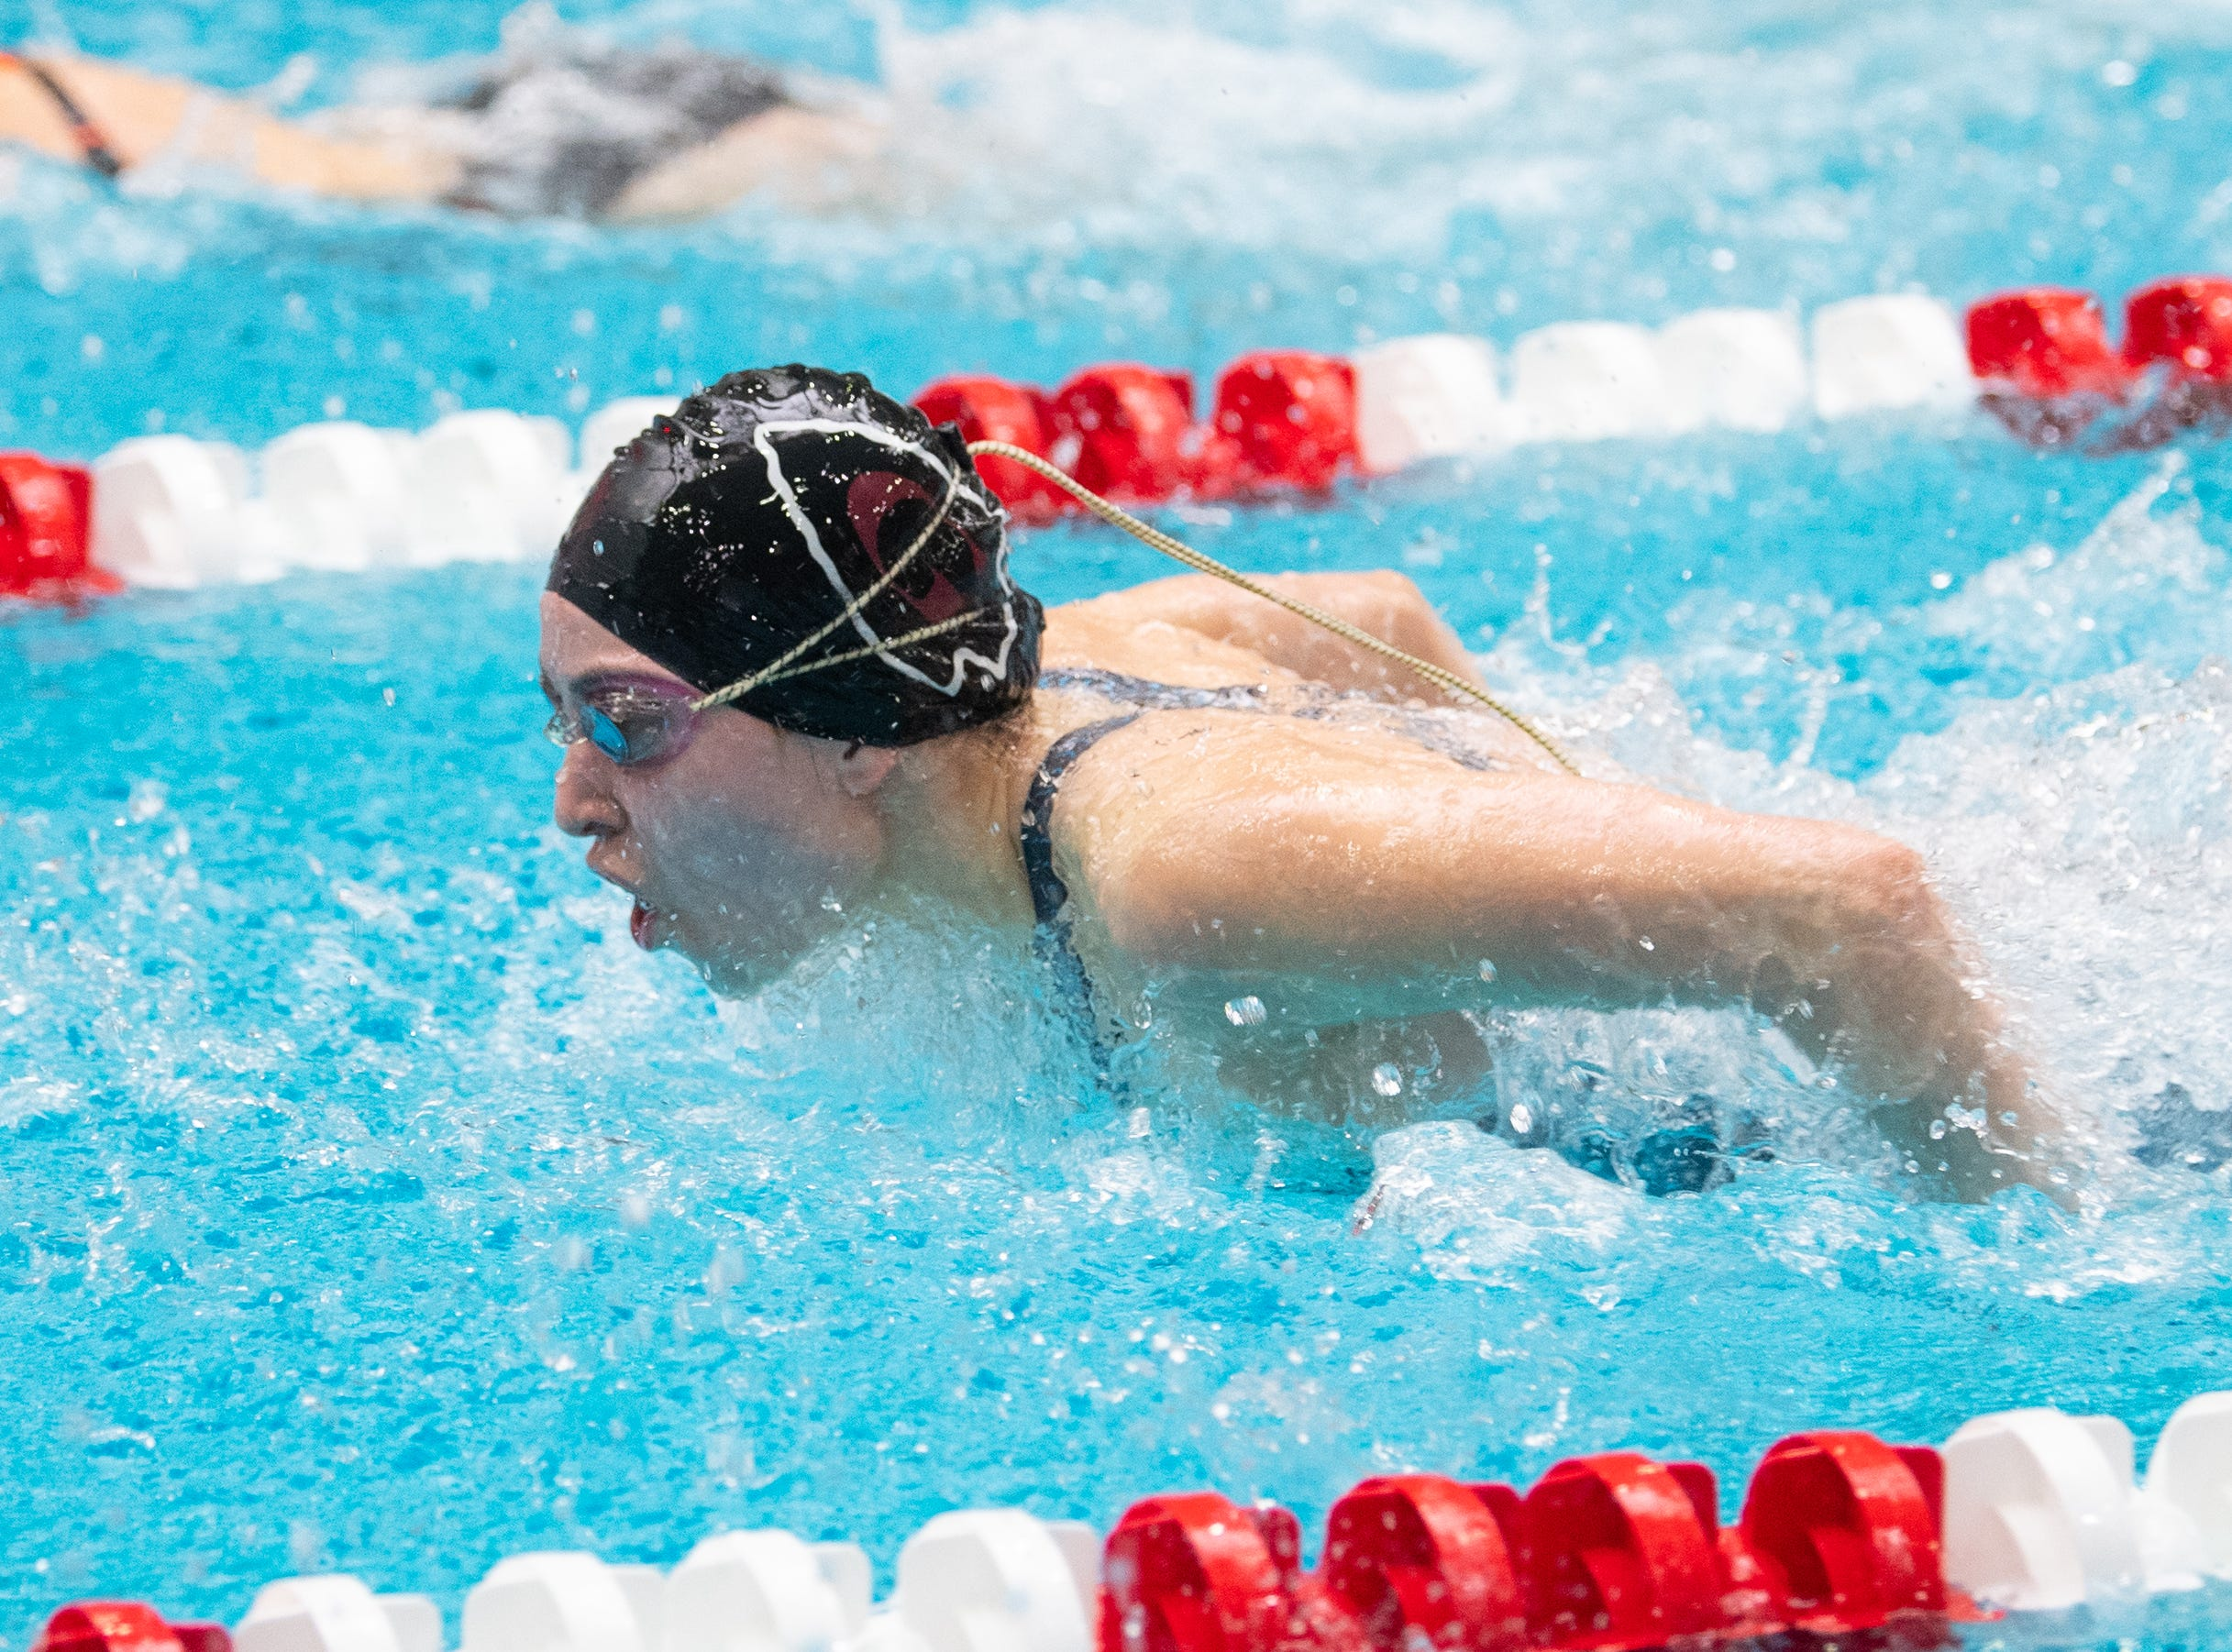 Morgan Newell of Gettysburg competes in the Girls 100 Yard Butterfly during the PIAA District 3 Girls AA Championship, March 1, 2019 at Cumberland Valley High School.